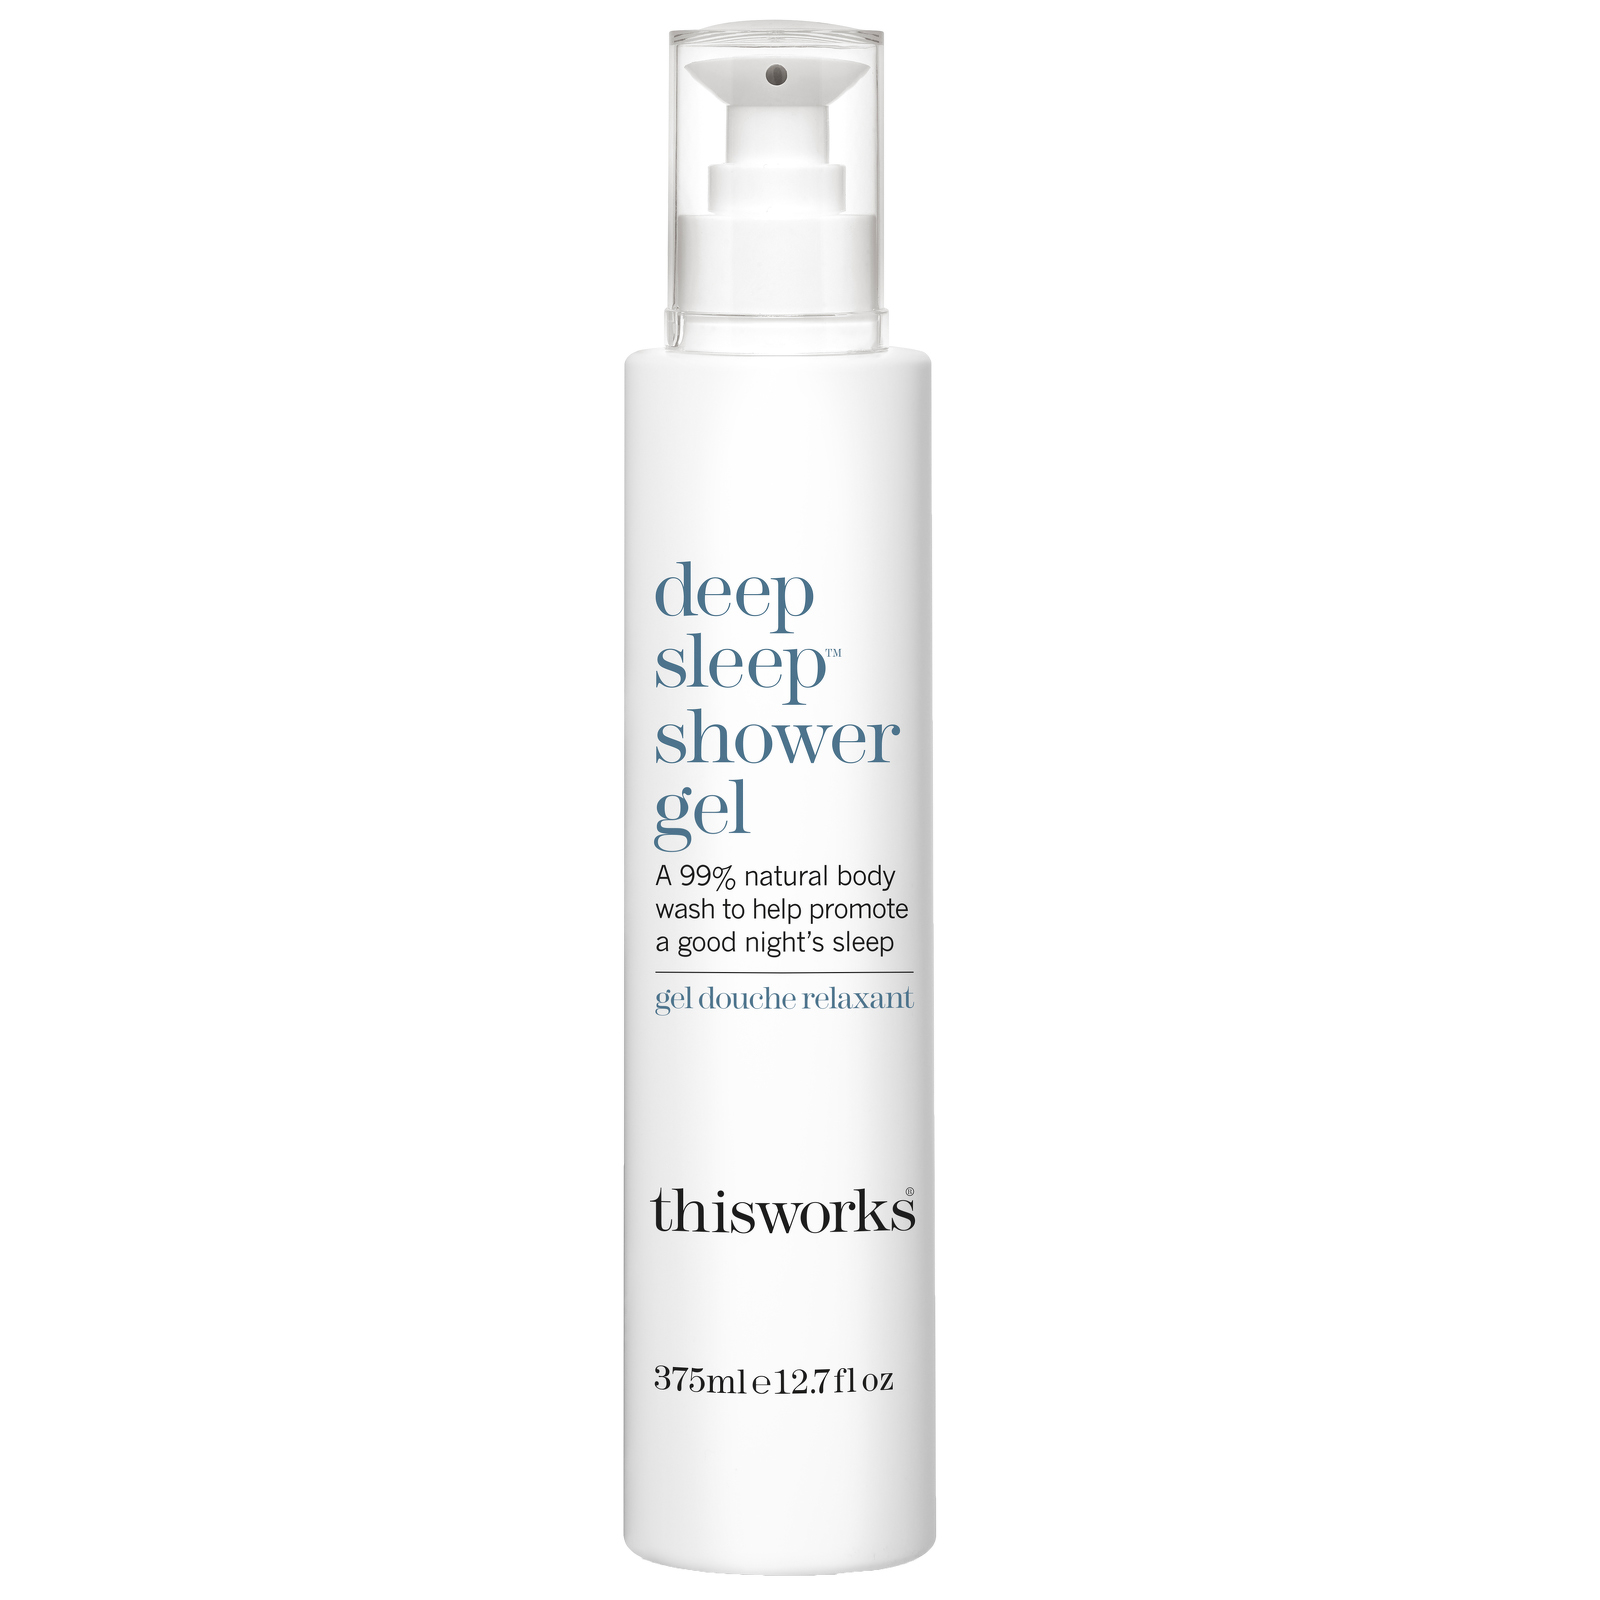 thisworks Bath & Shower Deep Sleep Shower Gel 375ml